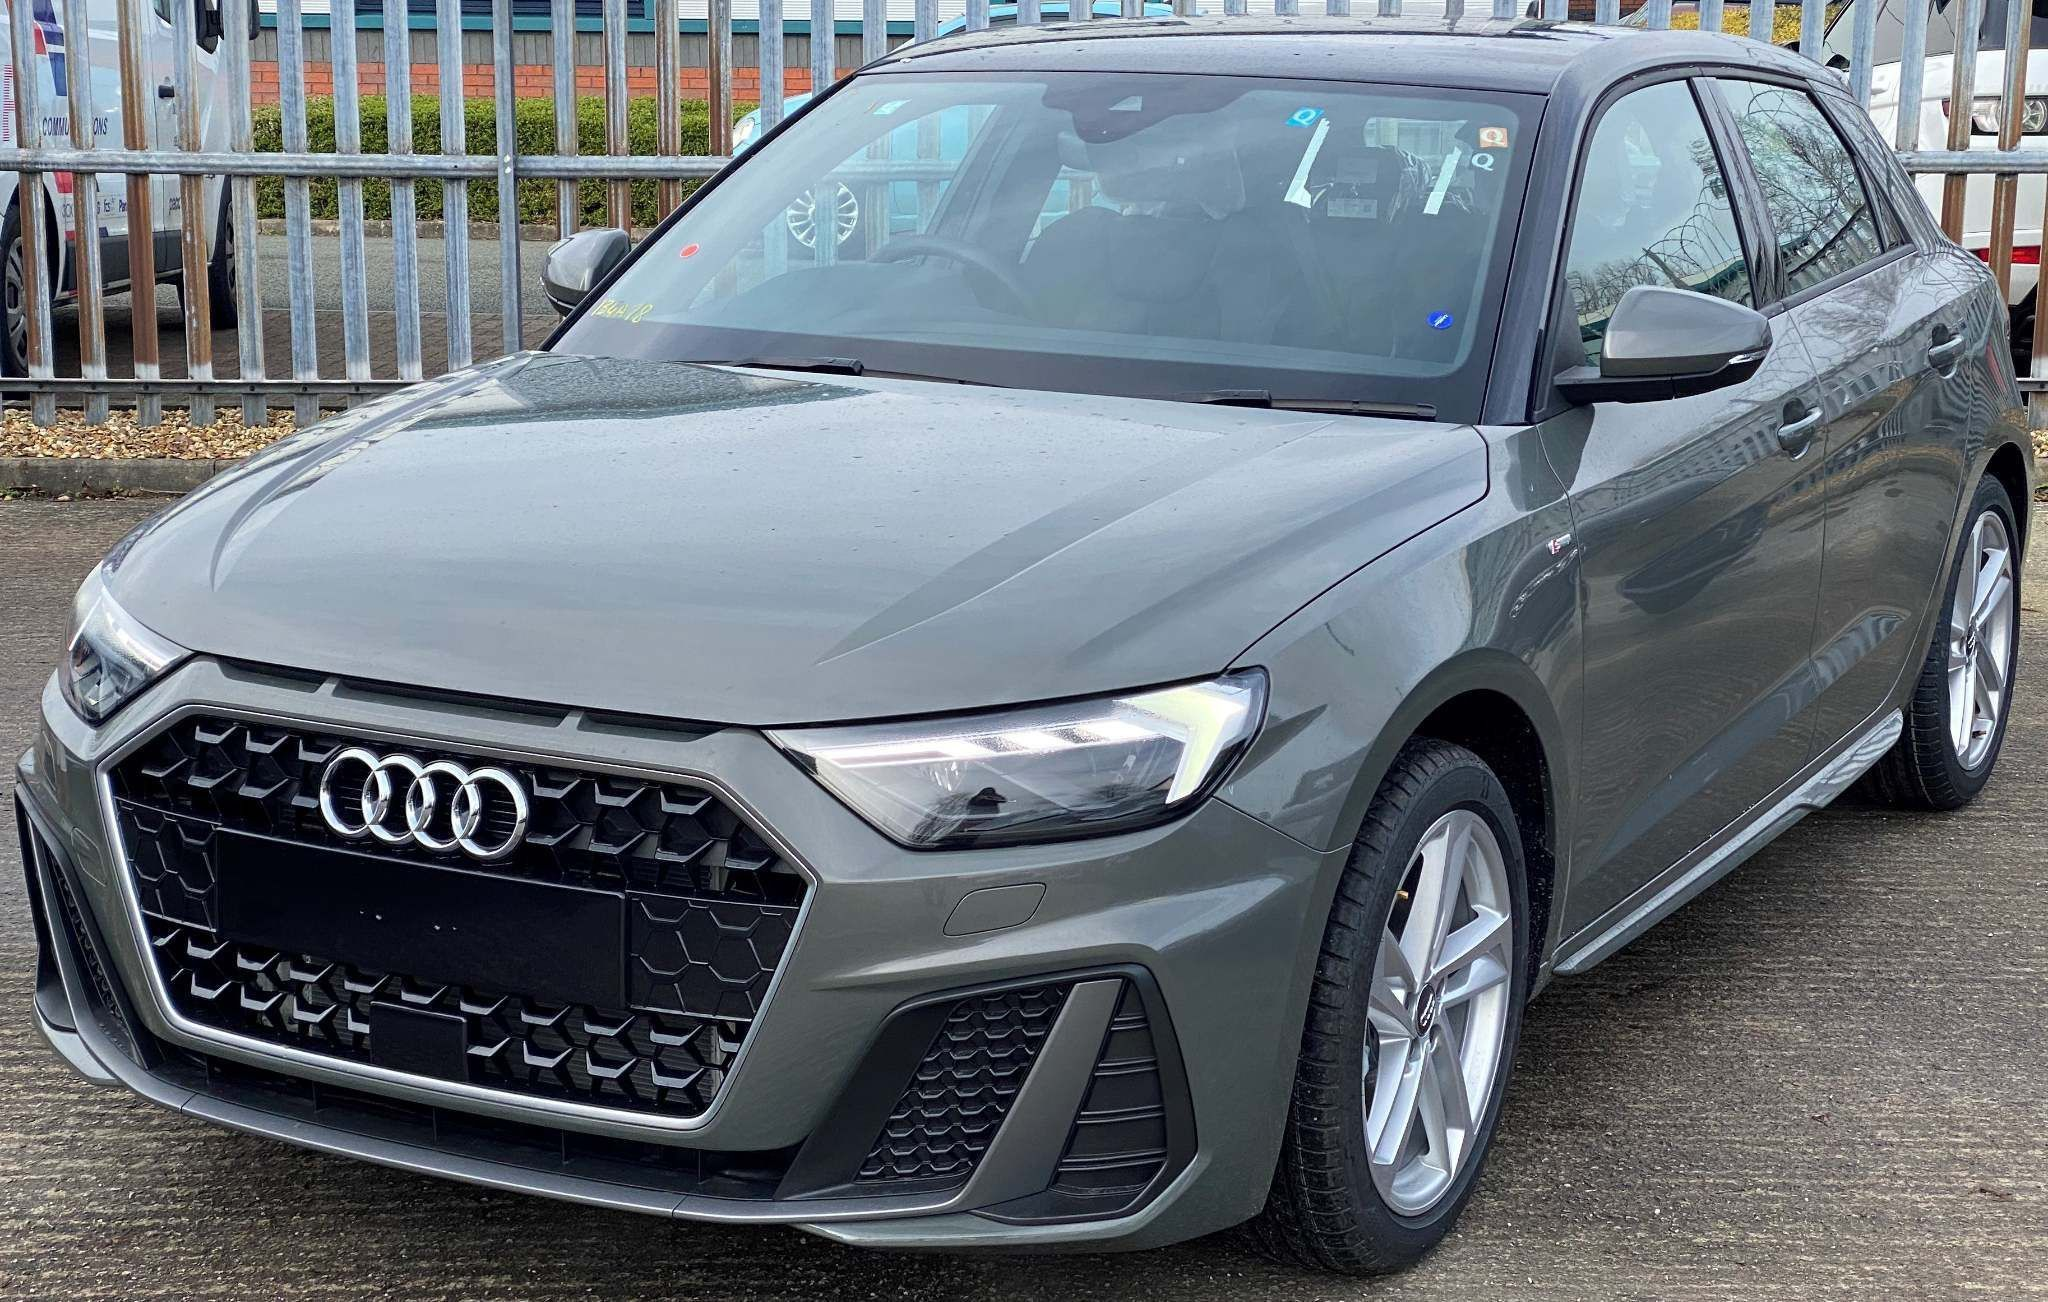 Audi A1 1 0 Tfsi 30 S Line Sportback S S 5dr In 2020 Audi A1